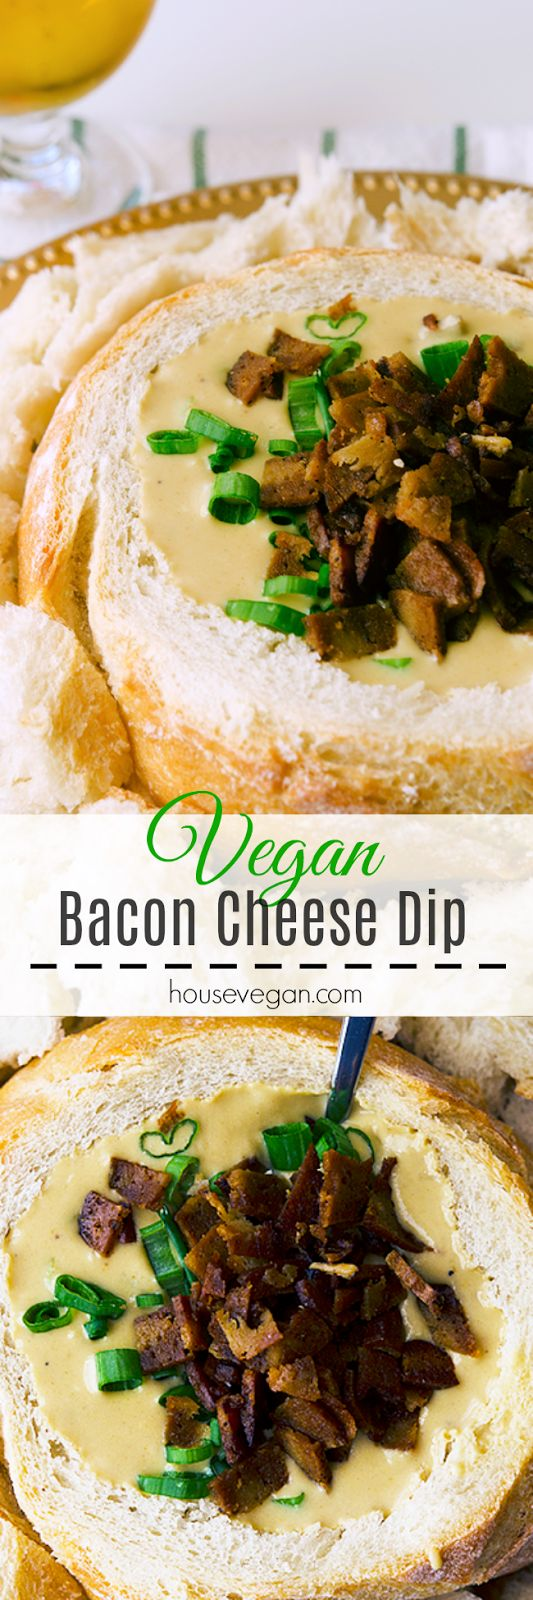 Vegan Bacon Cheese Dip - A super easy and creamy dip to satisfy guests with minimal effort. Perfect for chill dinner parties, the Big Game, and more. Click here for the recipe, or pin this for later <3